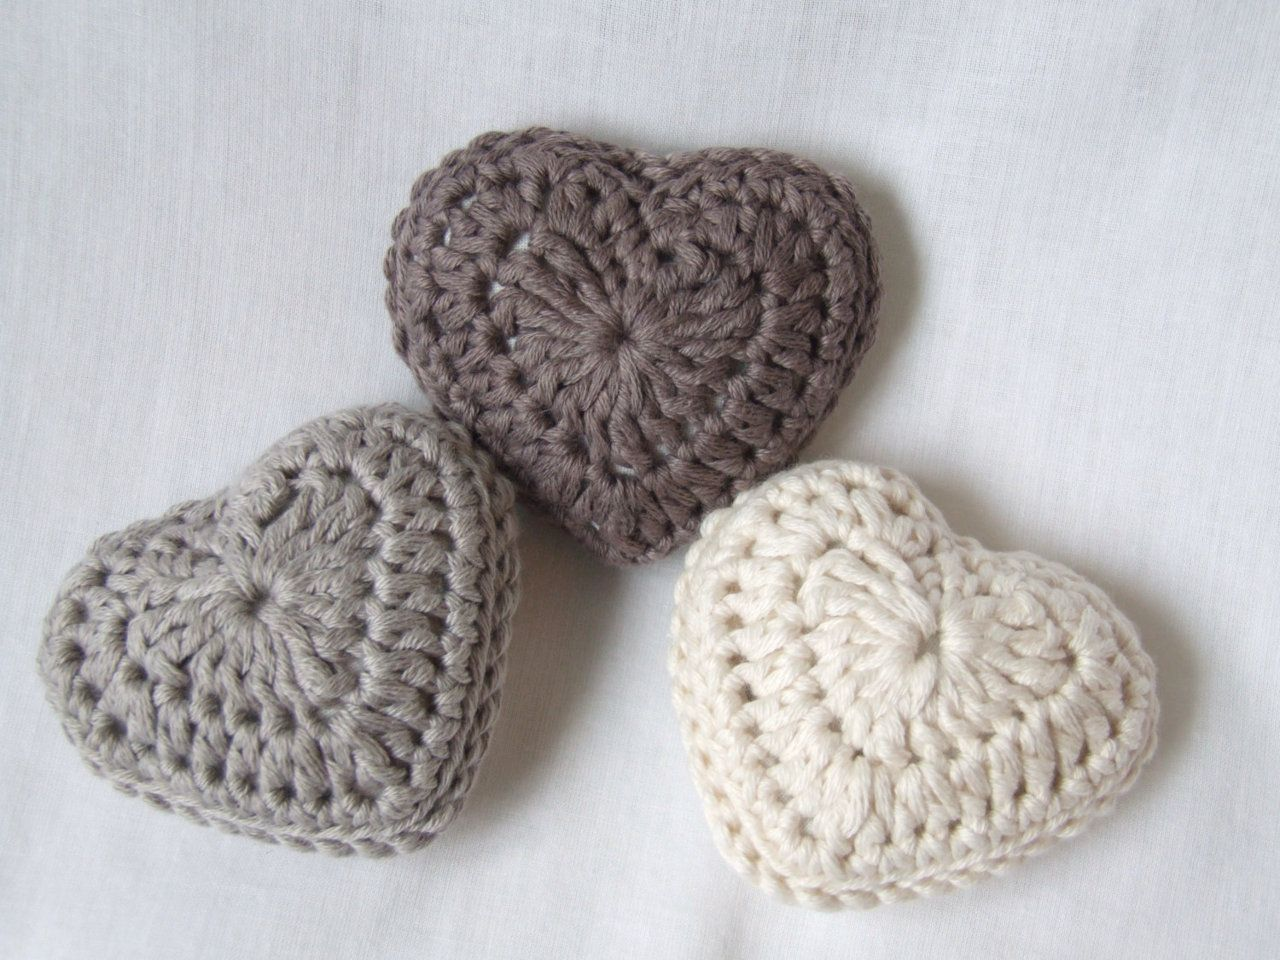 Crochet hearts stuffed with lavender for purchase via babancats crochet hearts stuffed with lavender for purchase via babancats etsy store bankloansurffo Gallery